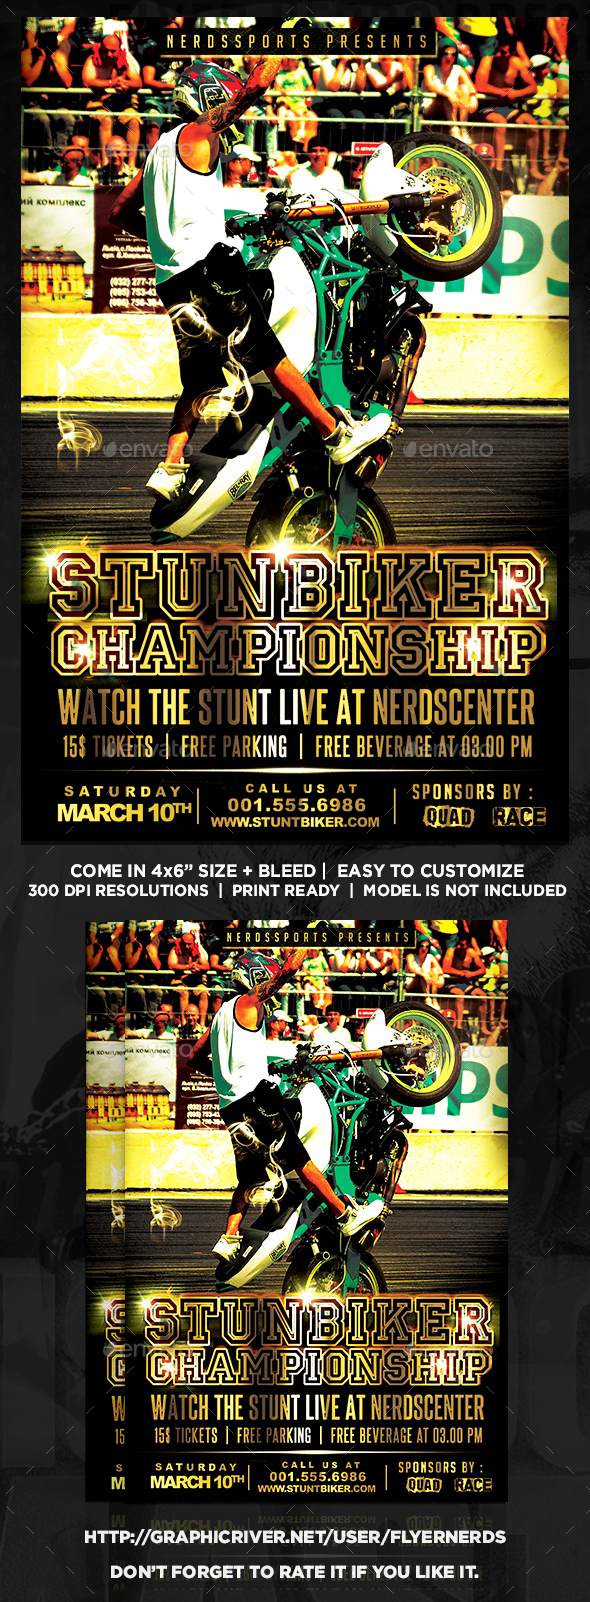 StuntBiker Championships Sports Flyer - Sports Events